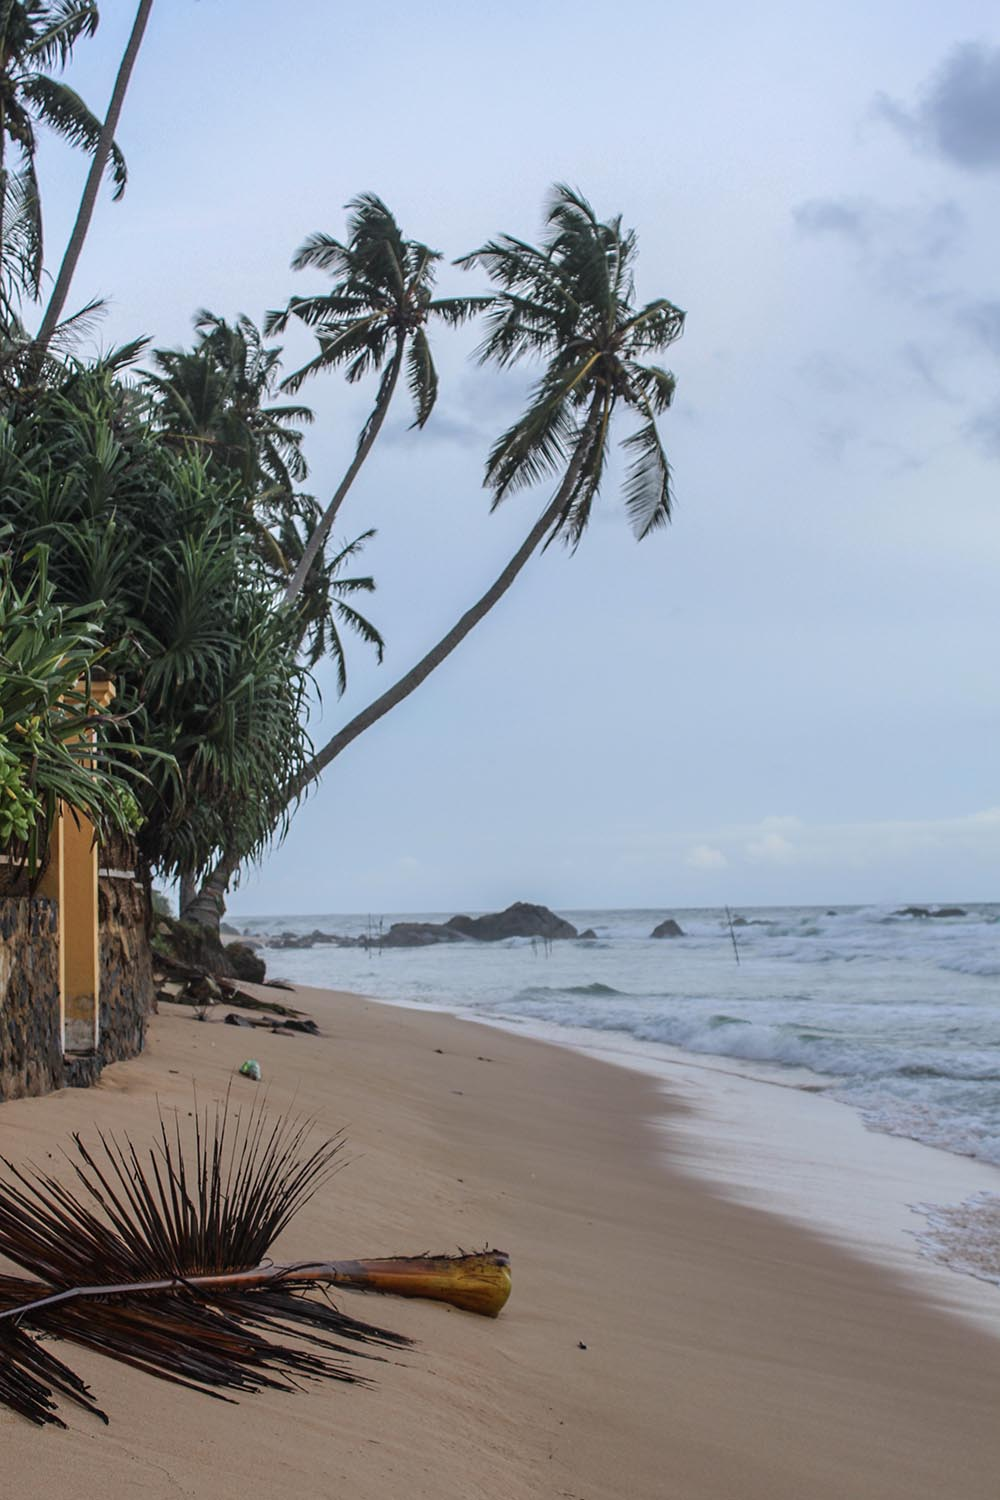 I fall in love with too many countries but I wasn't going to pass upon free Sri Lanka holidays. The result of seeing the Pearl of the Indian Ocean? I am in love yet again.